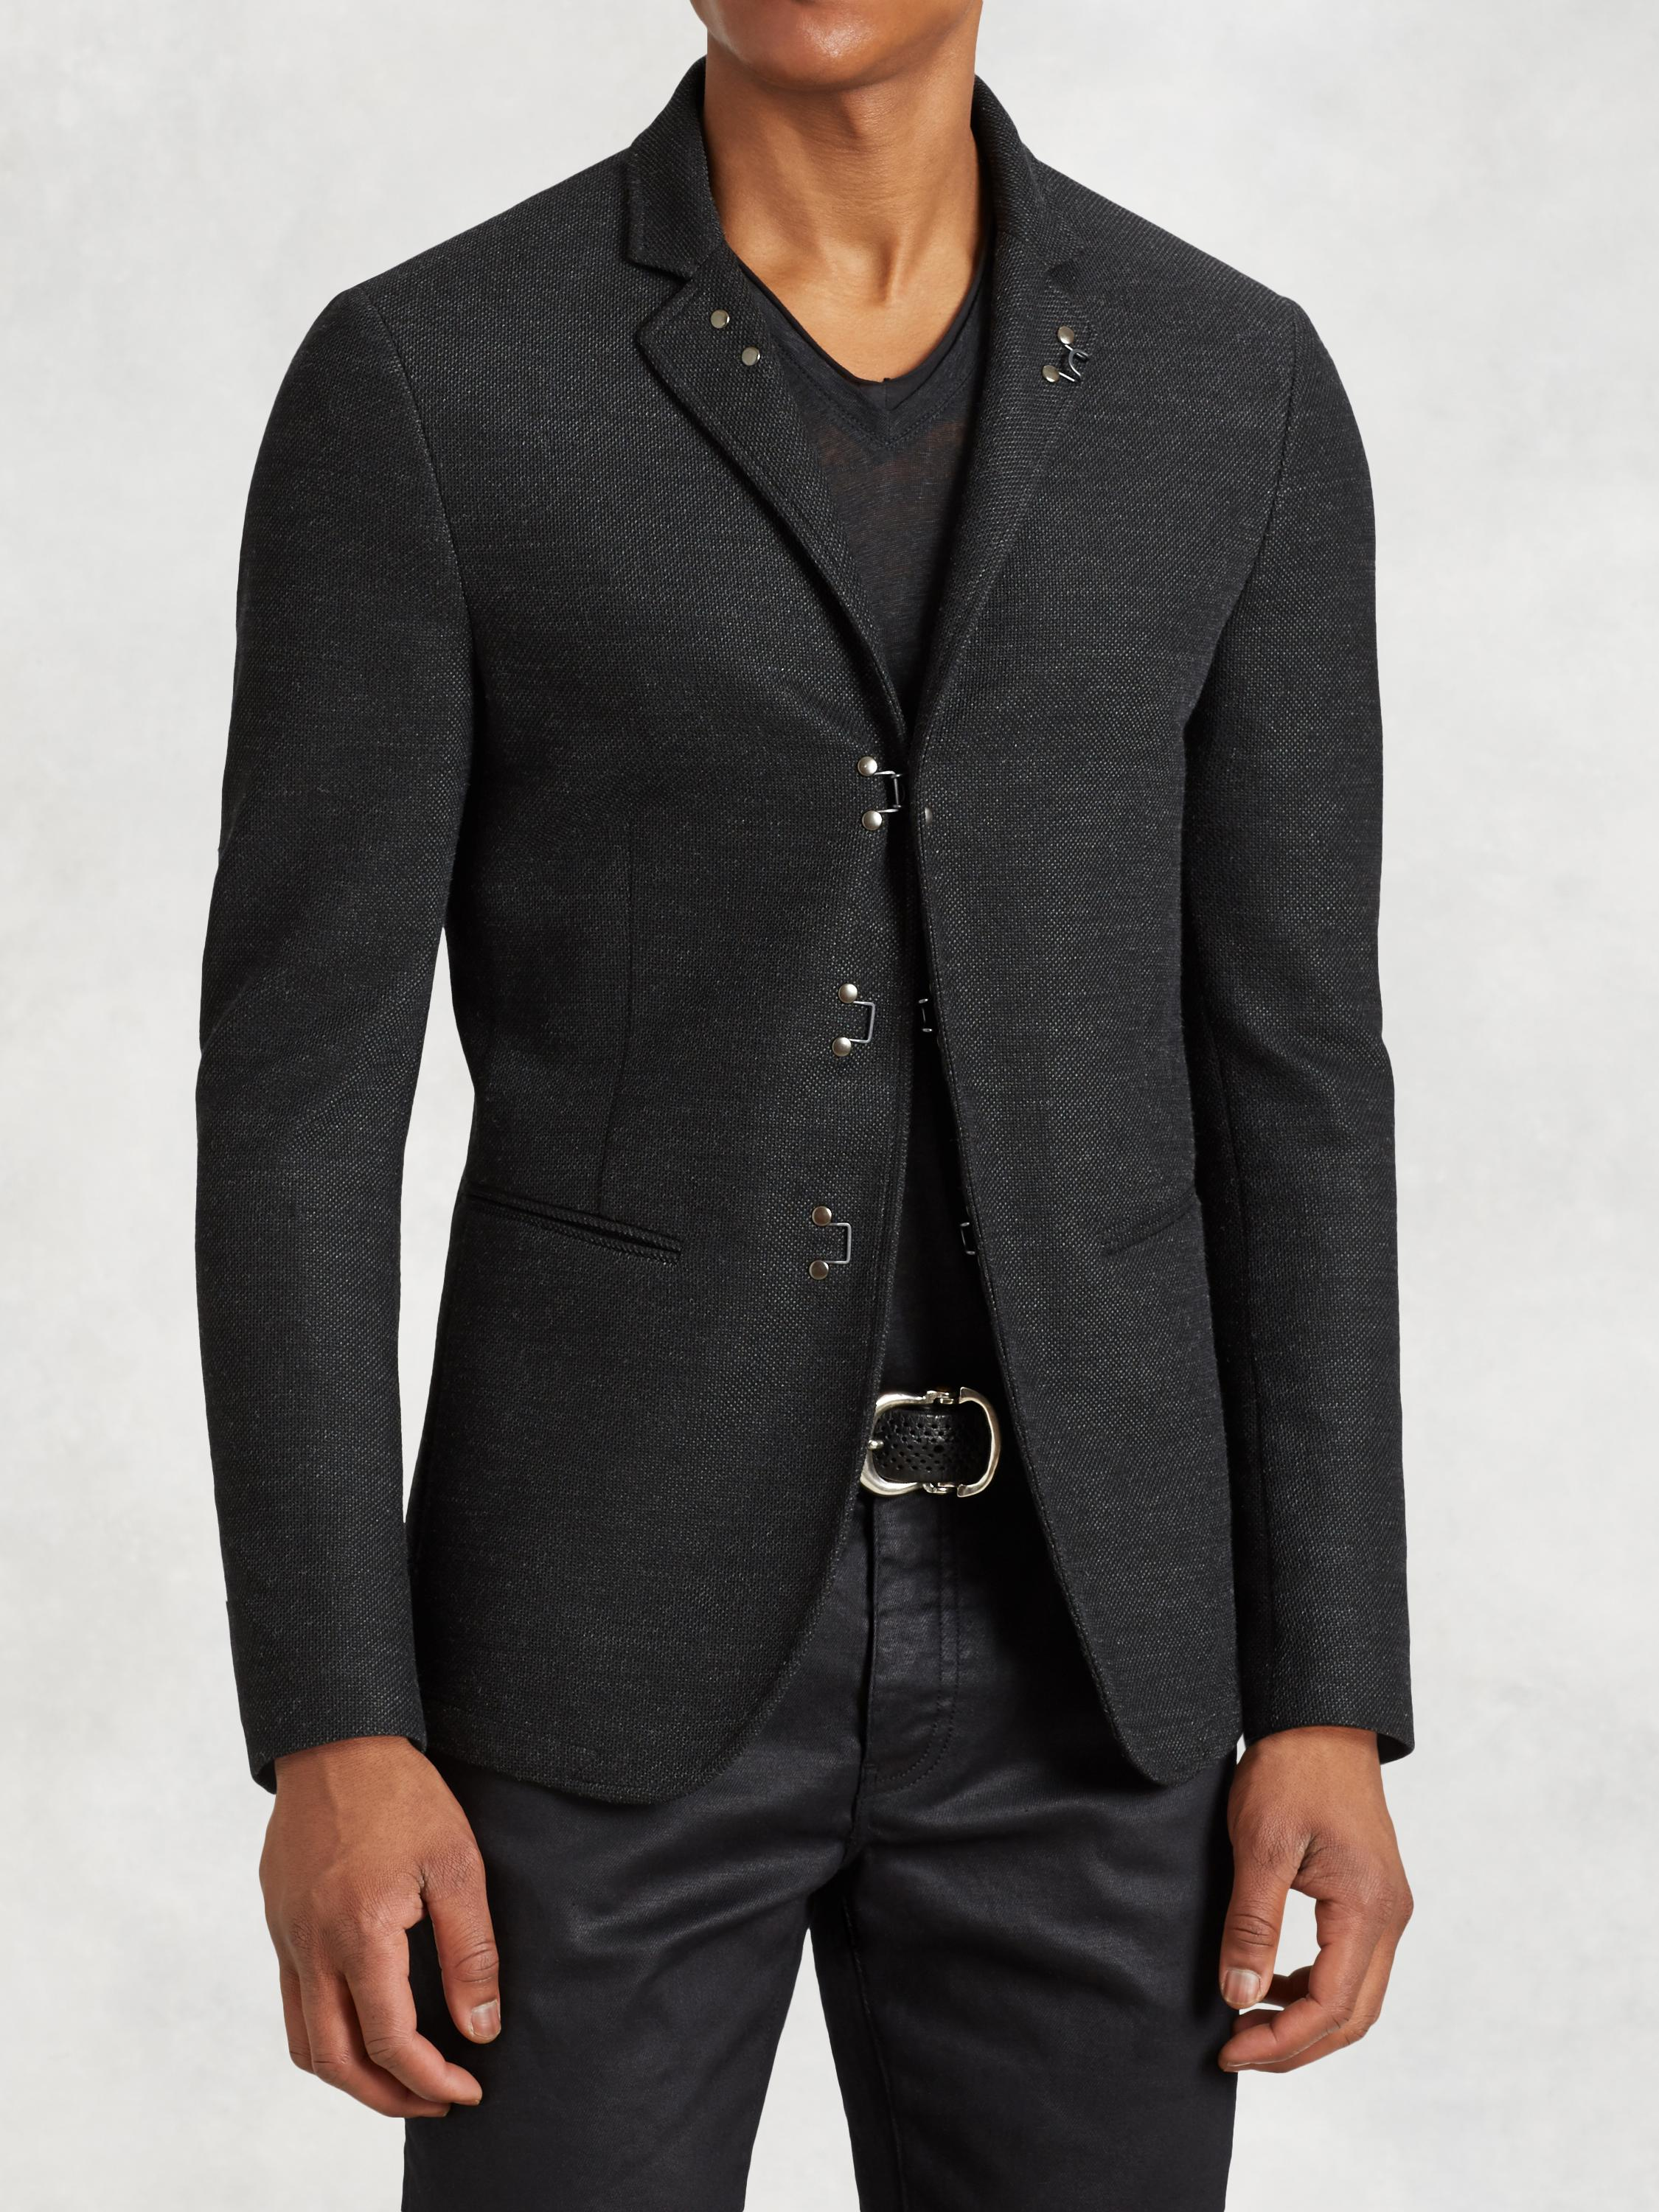 Hook & Bar Jacket